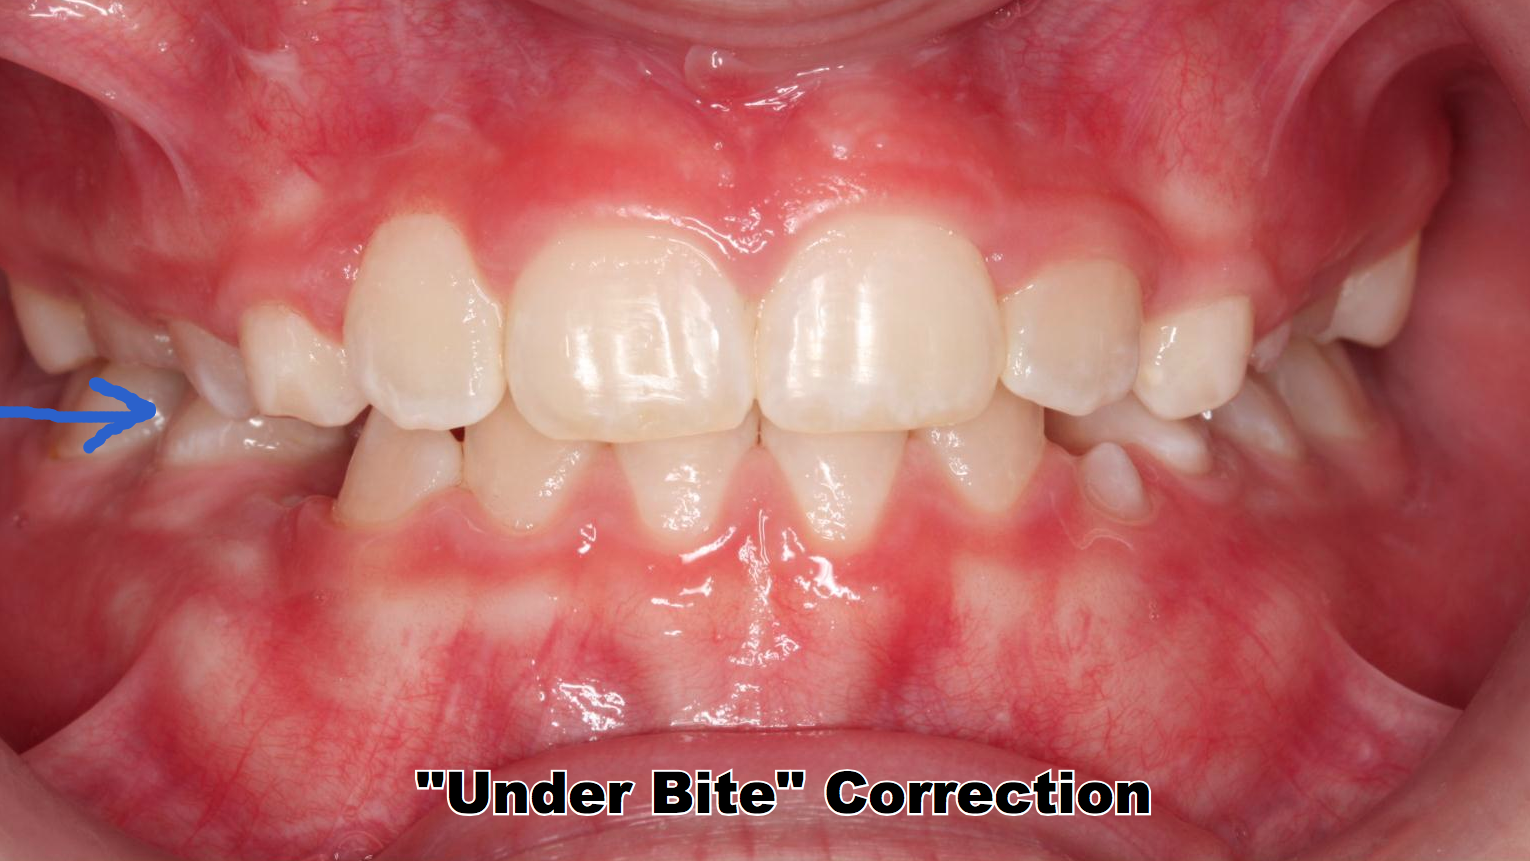 After Phase I Early Orthodontic Treatment the Under Bite is corrected.